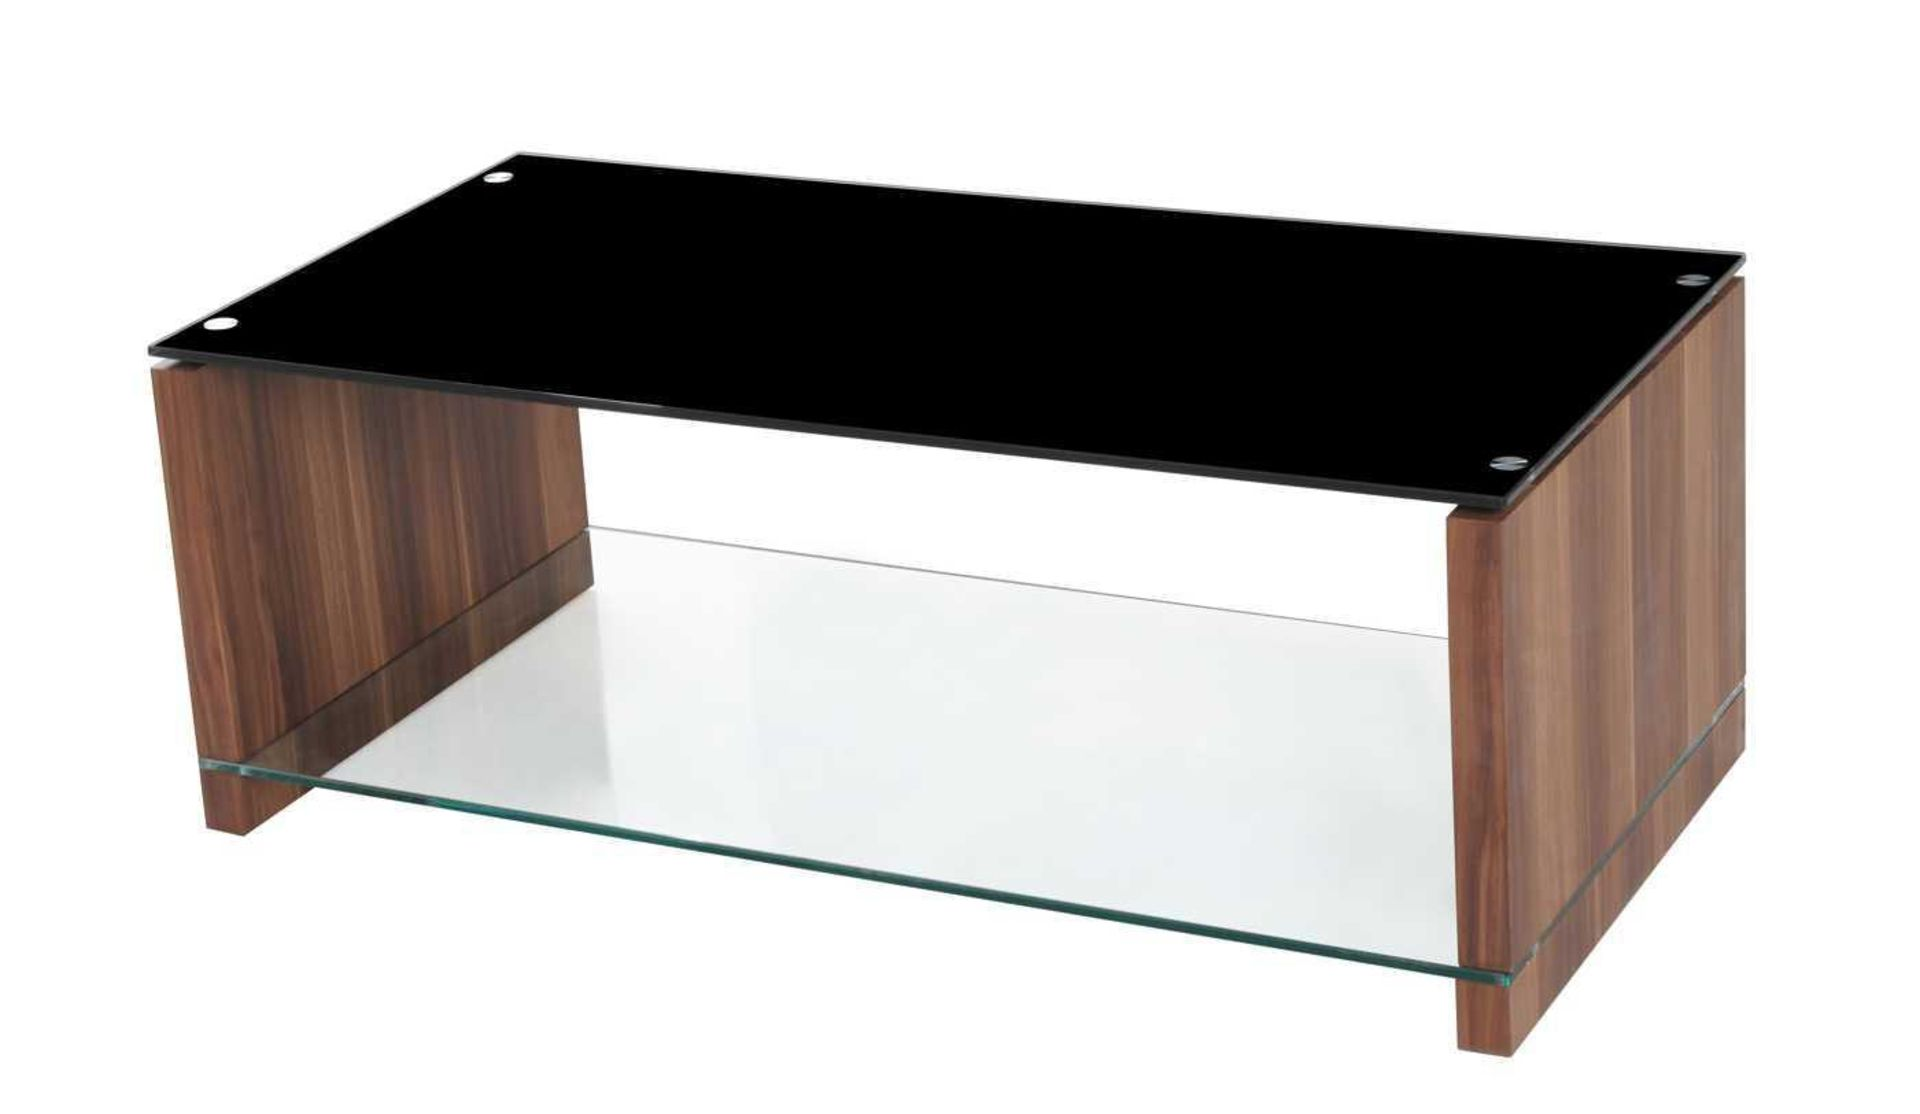 RRP £270 - Boxed 'Atlanta' Coffee Table In Walnut Finish With Black Glass Top (Appraisals